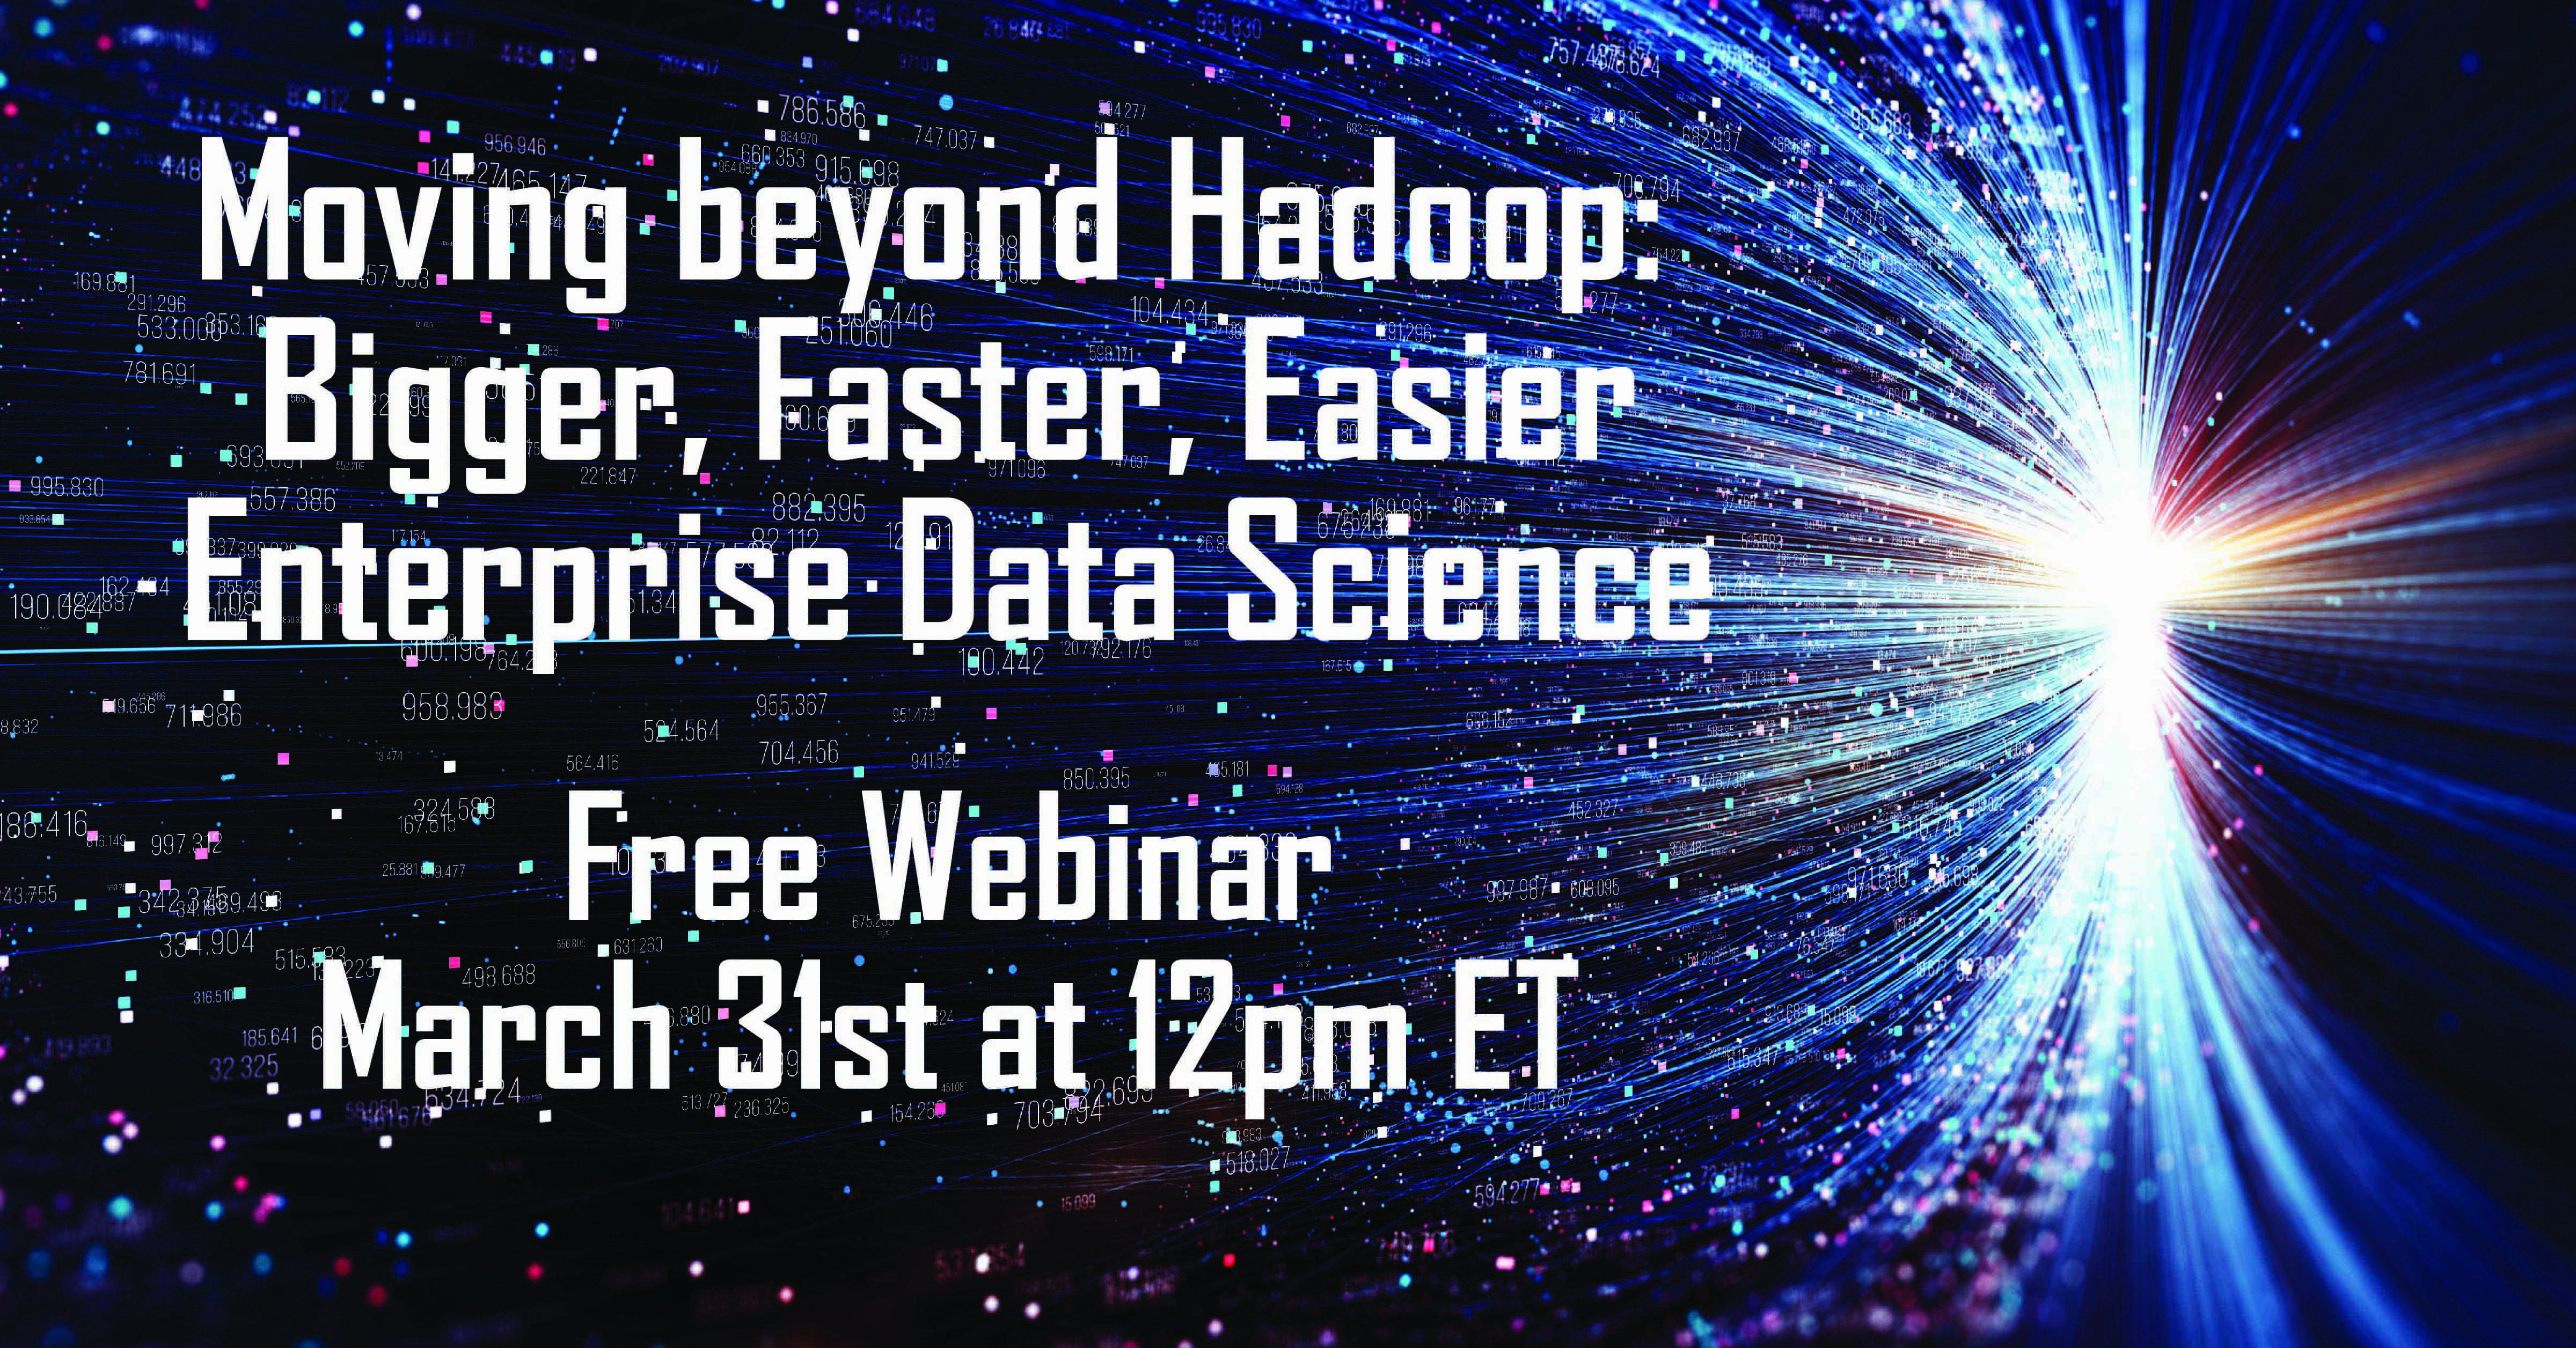 Moving Beyond Hadoop: Bigger, Faster, Easier Enterprise Data Science